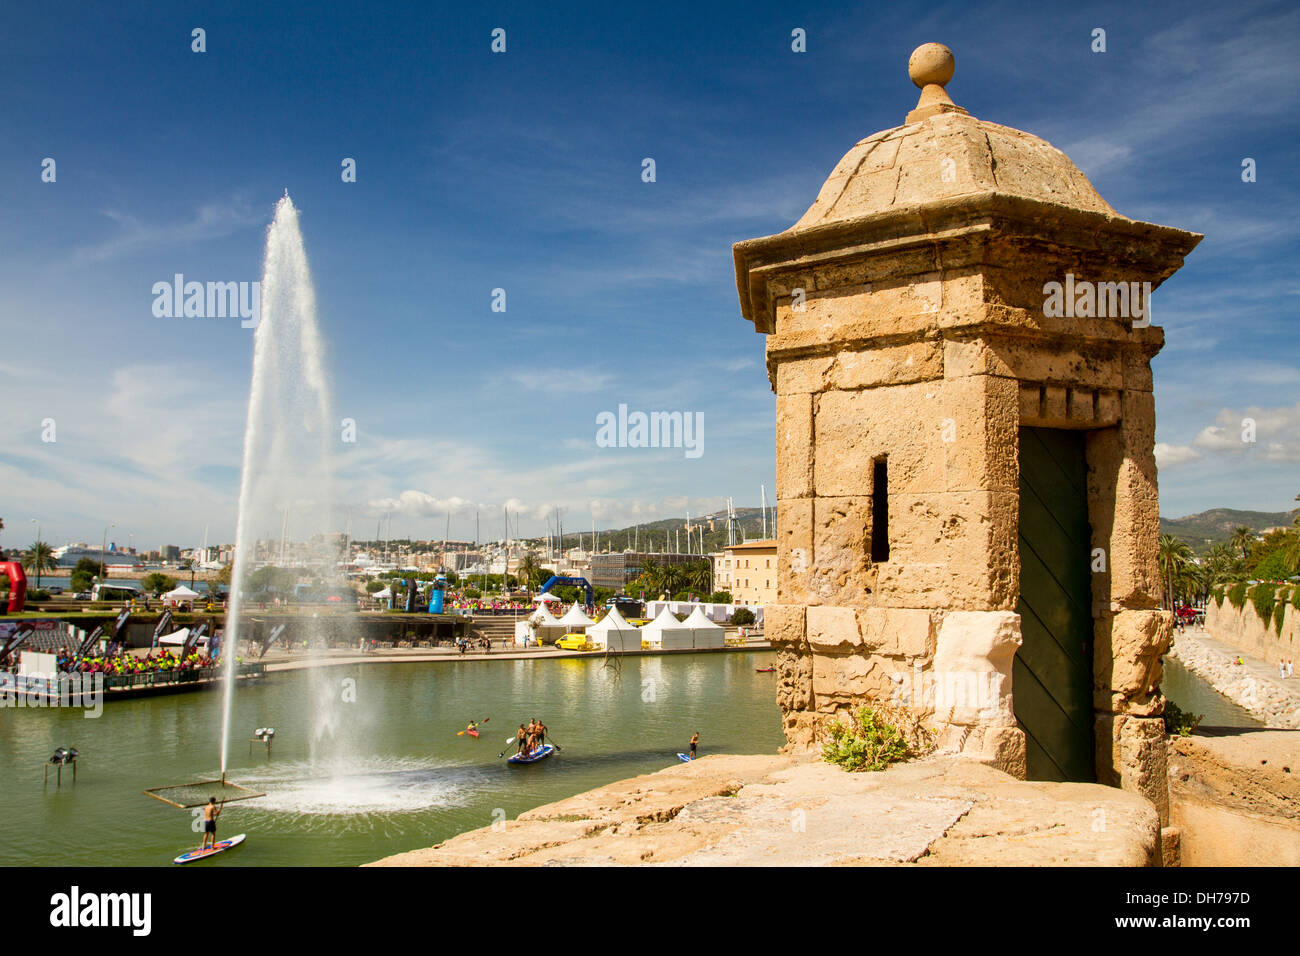 Artificial lake in front of La Seu Cathedral, Palma de Mallorca, Balearic Islands, Spain - Stock Image